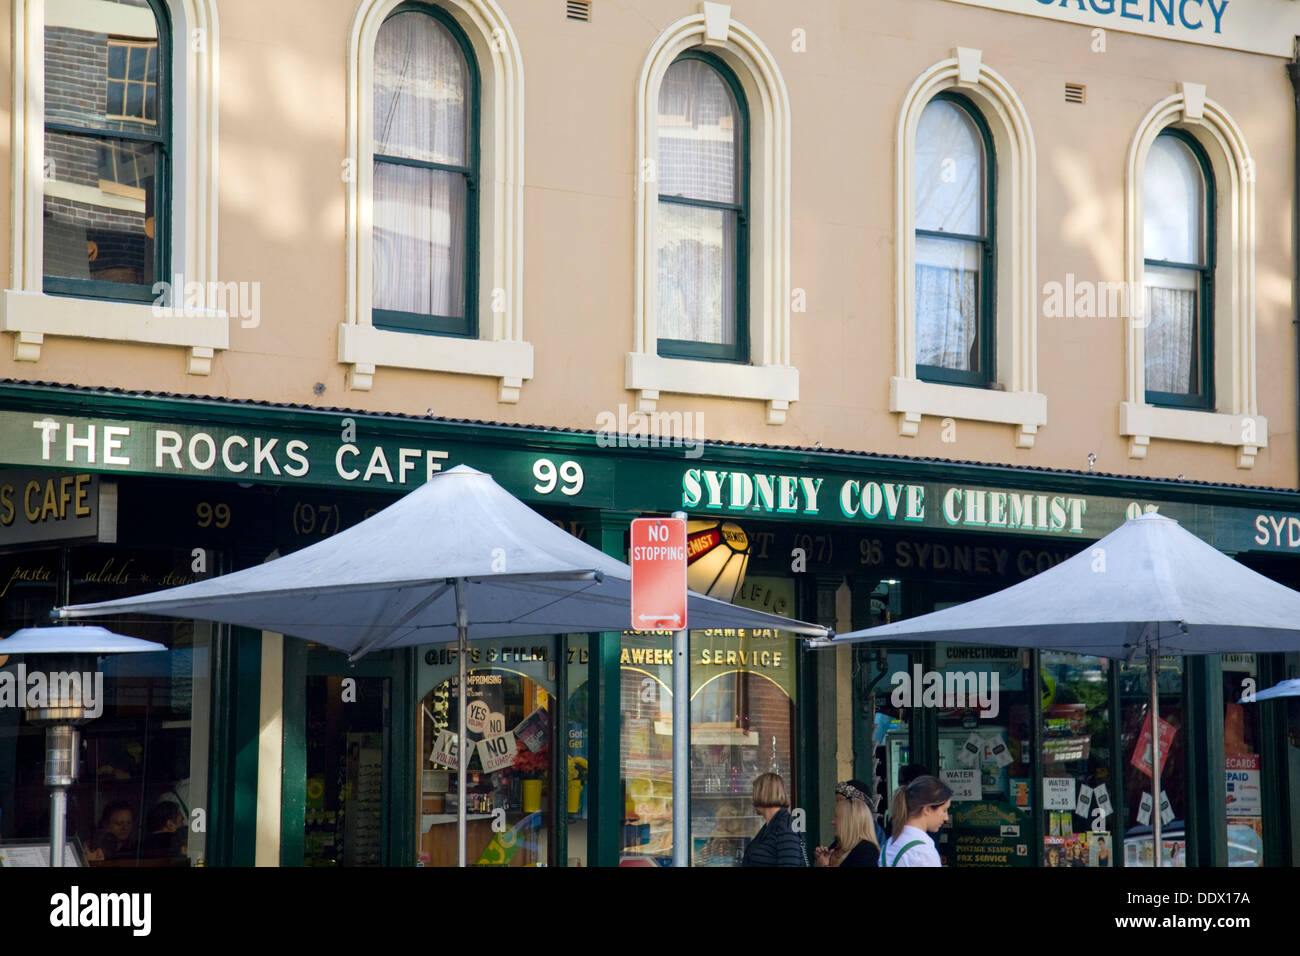 rocks cafe and sydney cove chemist in george street, the rocks,sydney - Stock Image